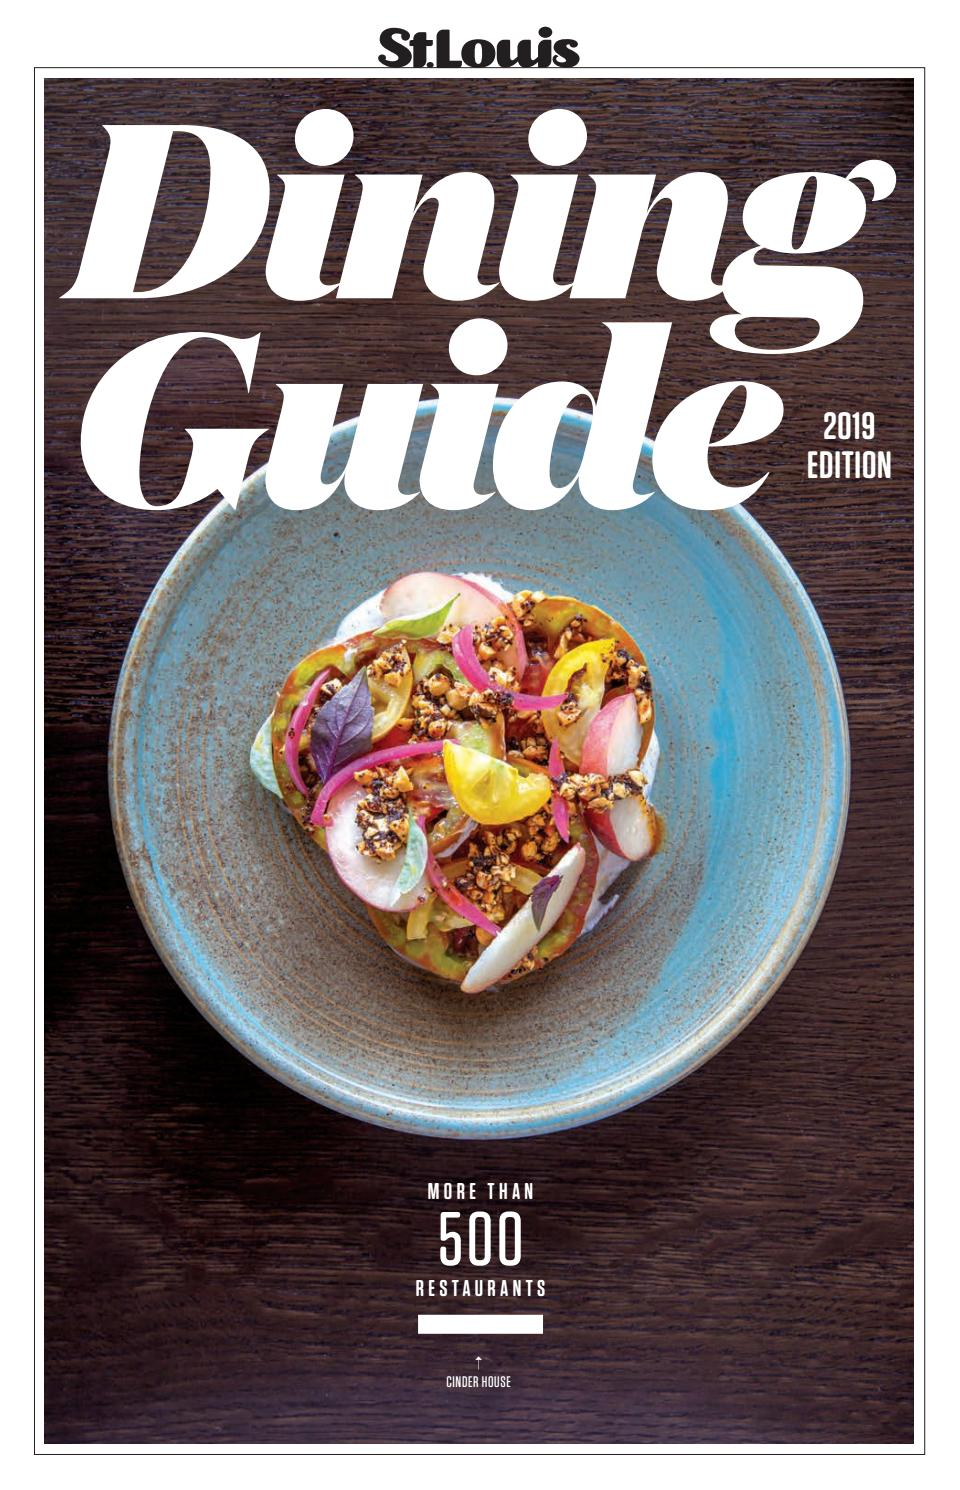 St Louis Magazine Dining Guide 2019 By St Louis Magazine Issuu Learn the value of 1 euro (eur) in united states dollars (usd) today, currency exchange rate change for the week, for the year. st louis magazine dining guide 2019